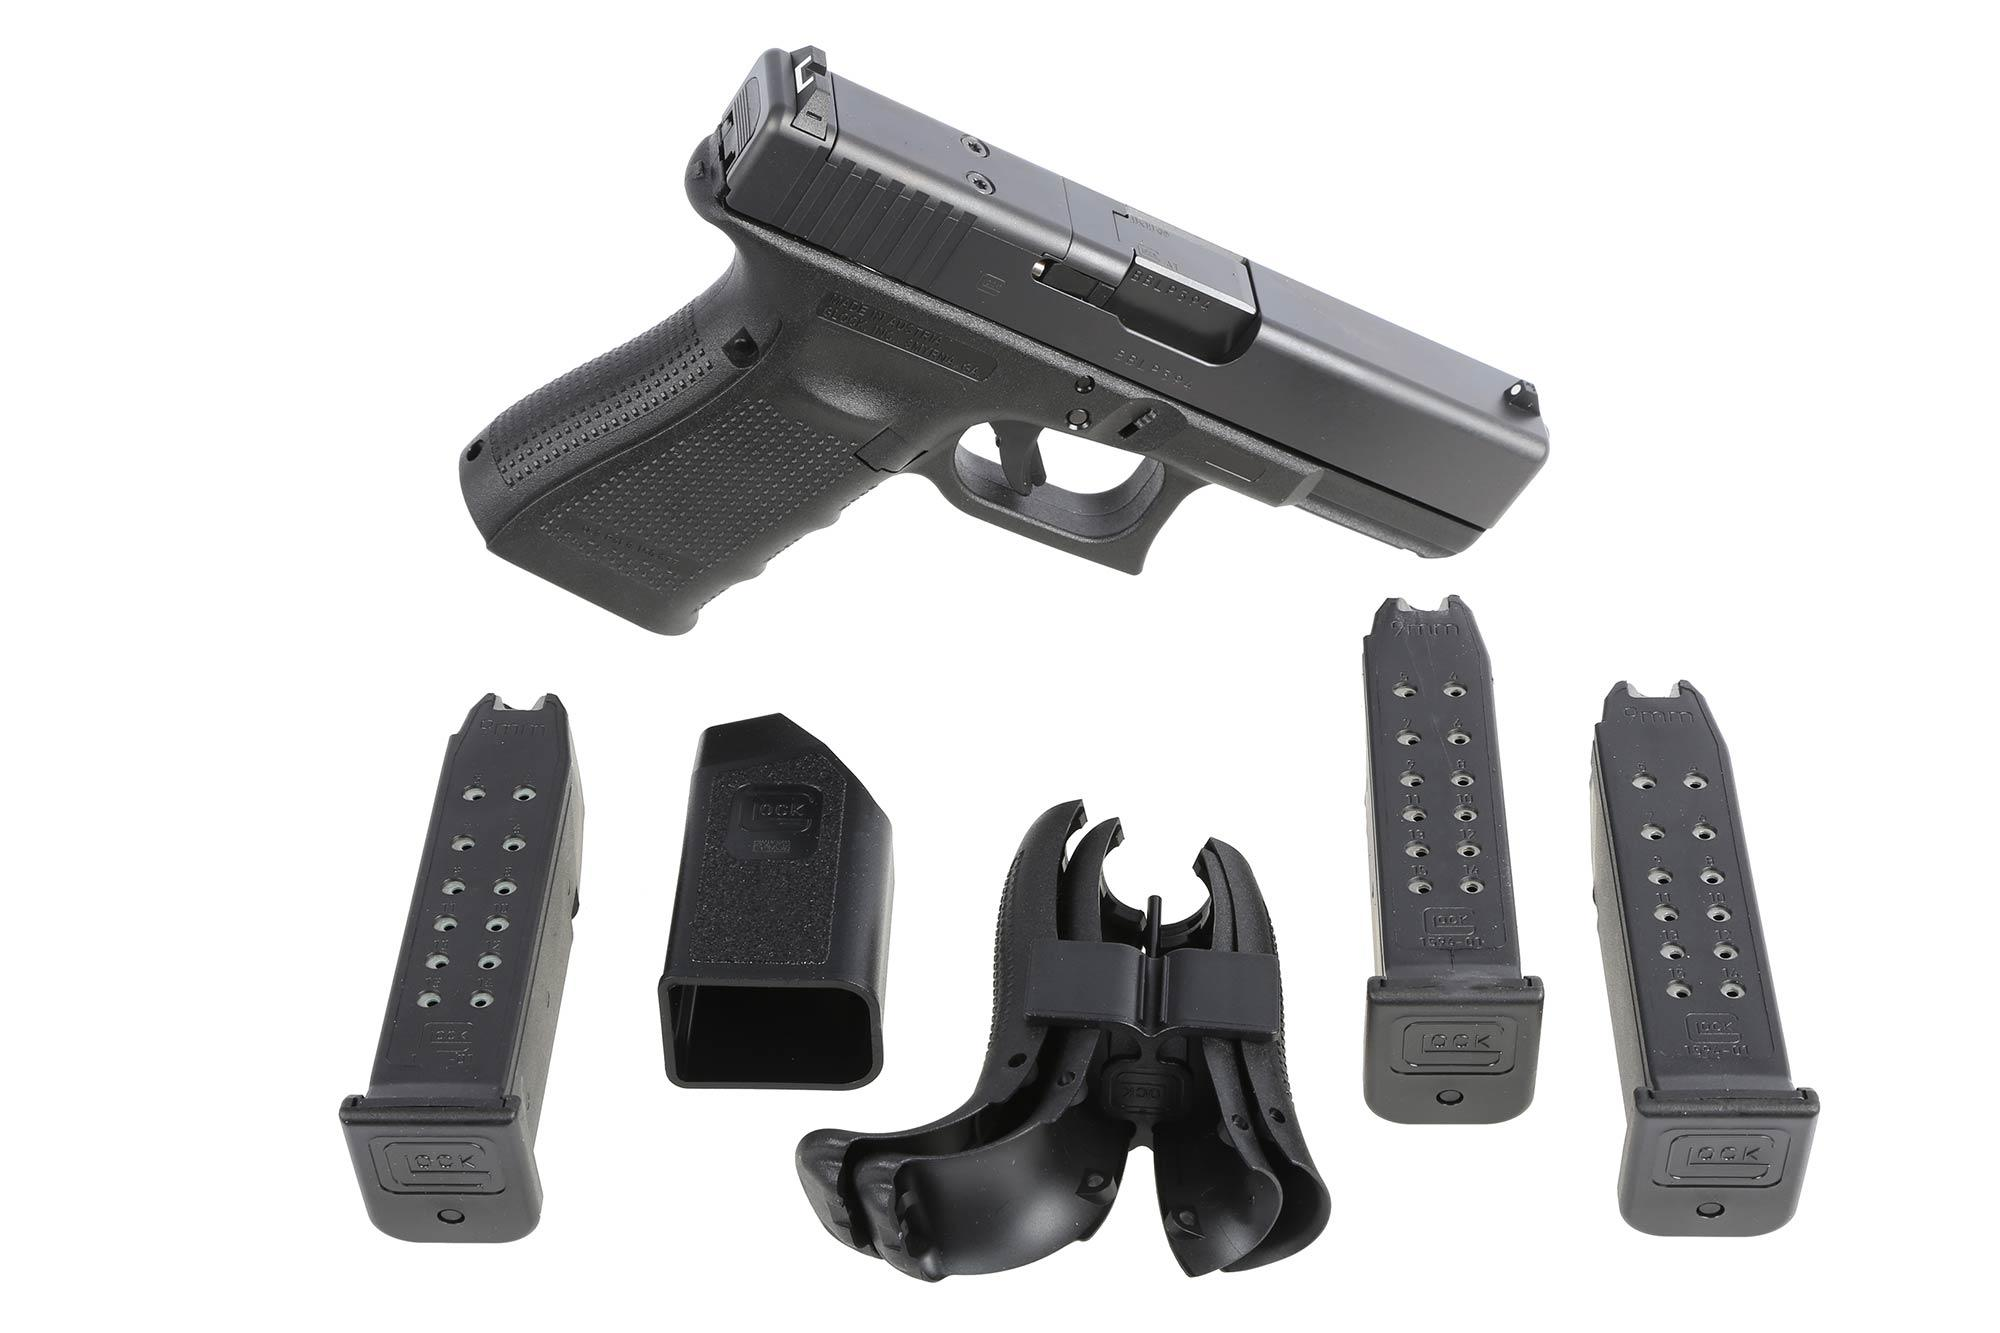 The G19 Glock handgun MOS comes with three magazines and multiple backstraps